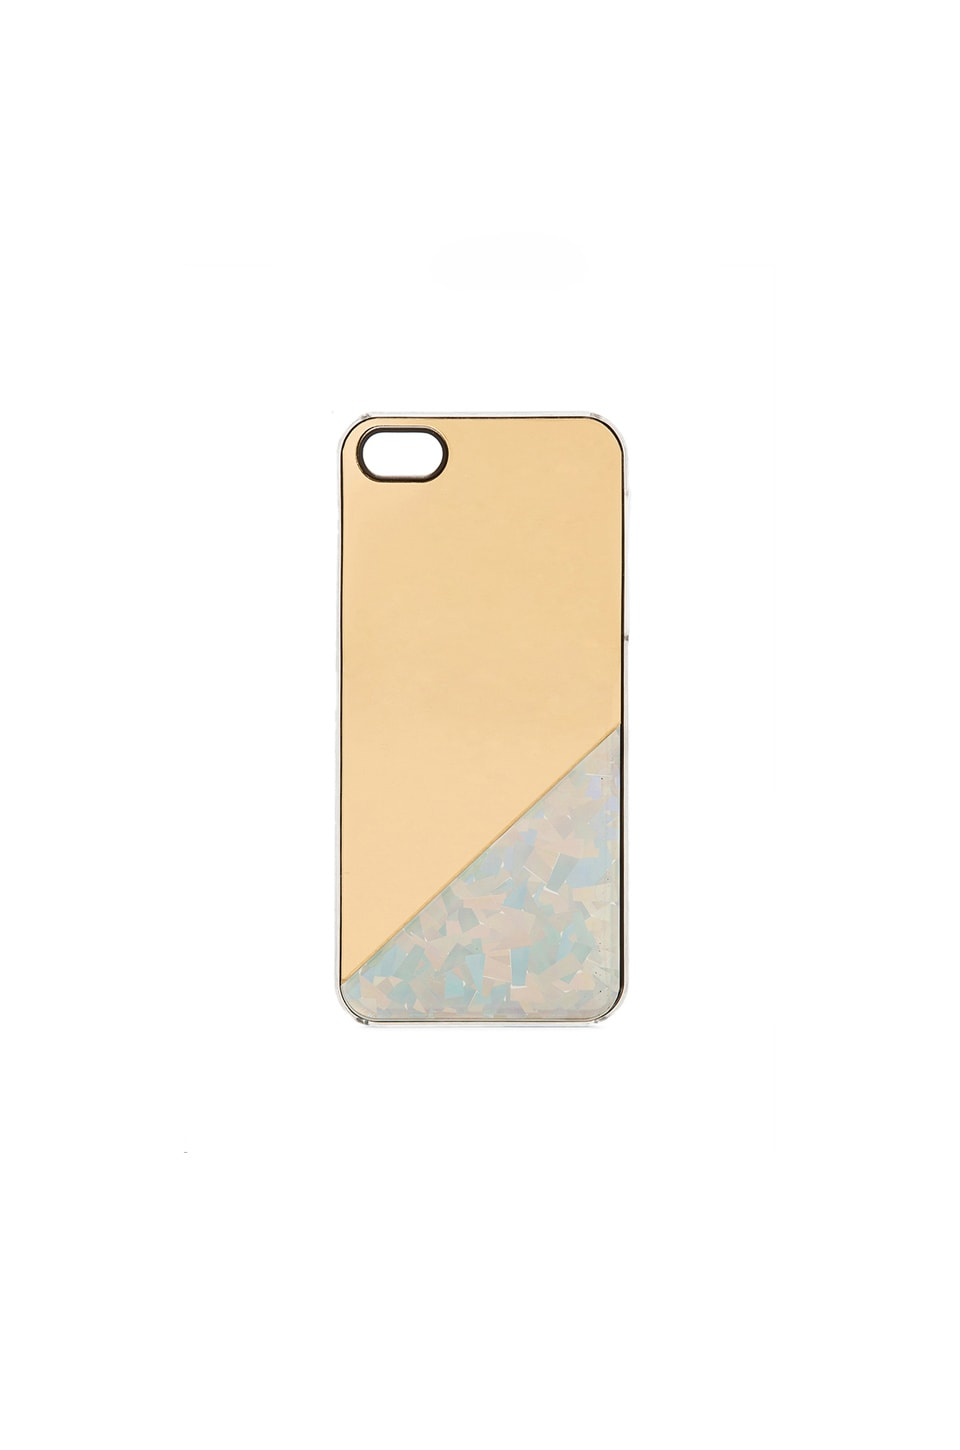 ZERO GRAVITY Lux iPhone 5 Case